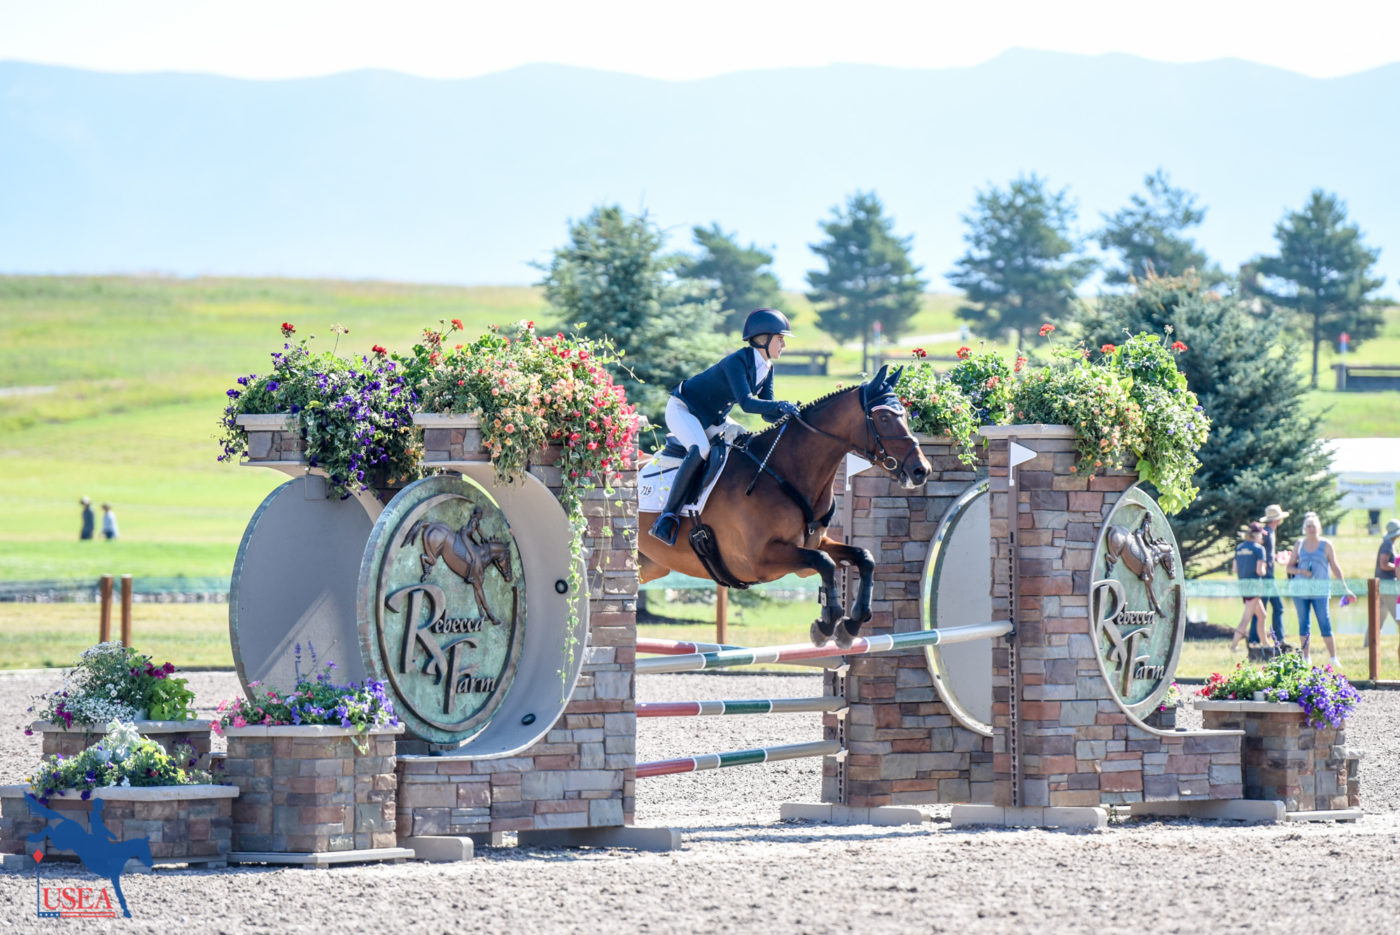 14th - Sami Crandell and Fernhill Chaos